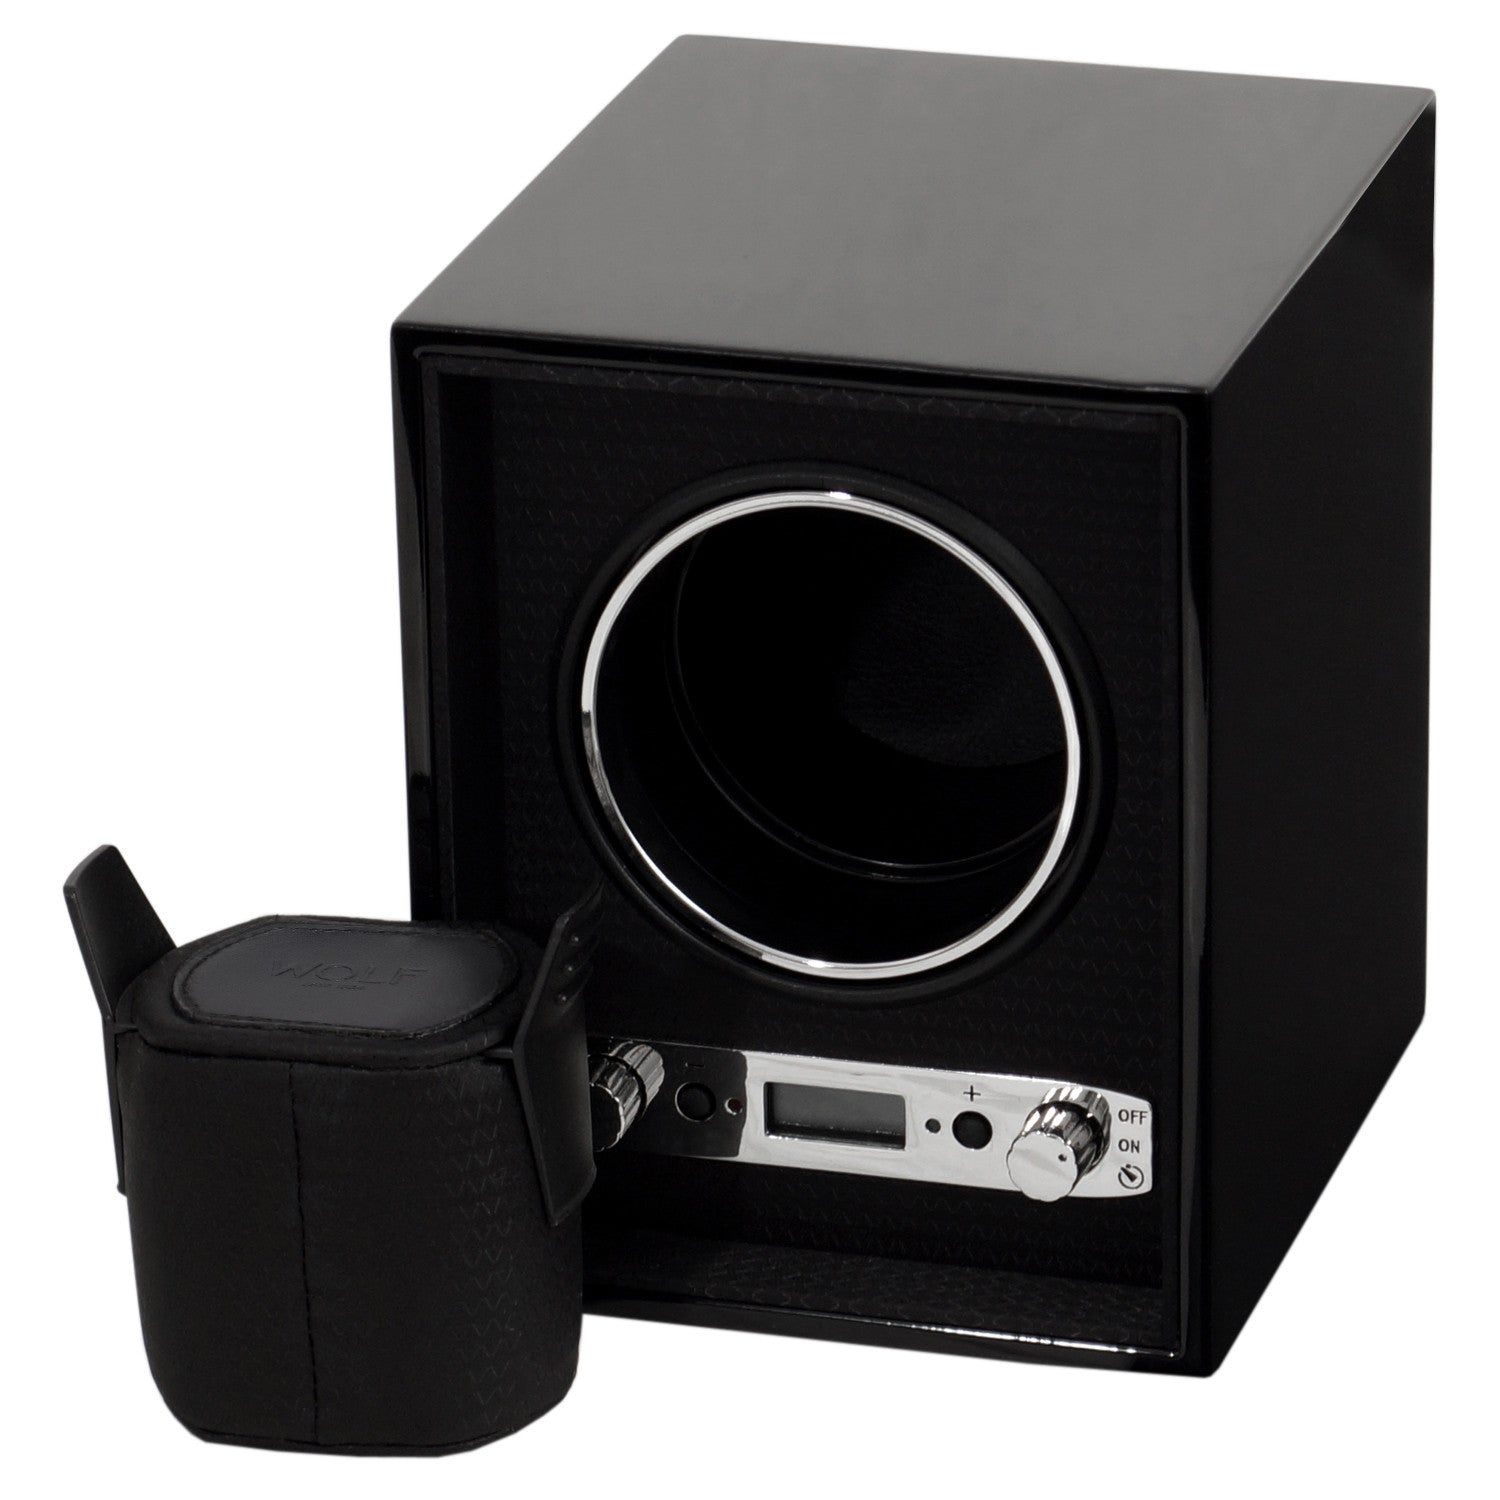 WOLF Meridian Single Watch Winder Black by Burton Blake